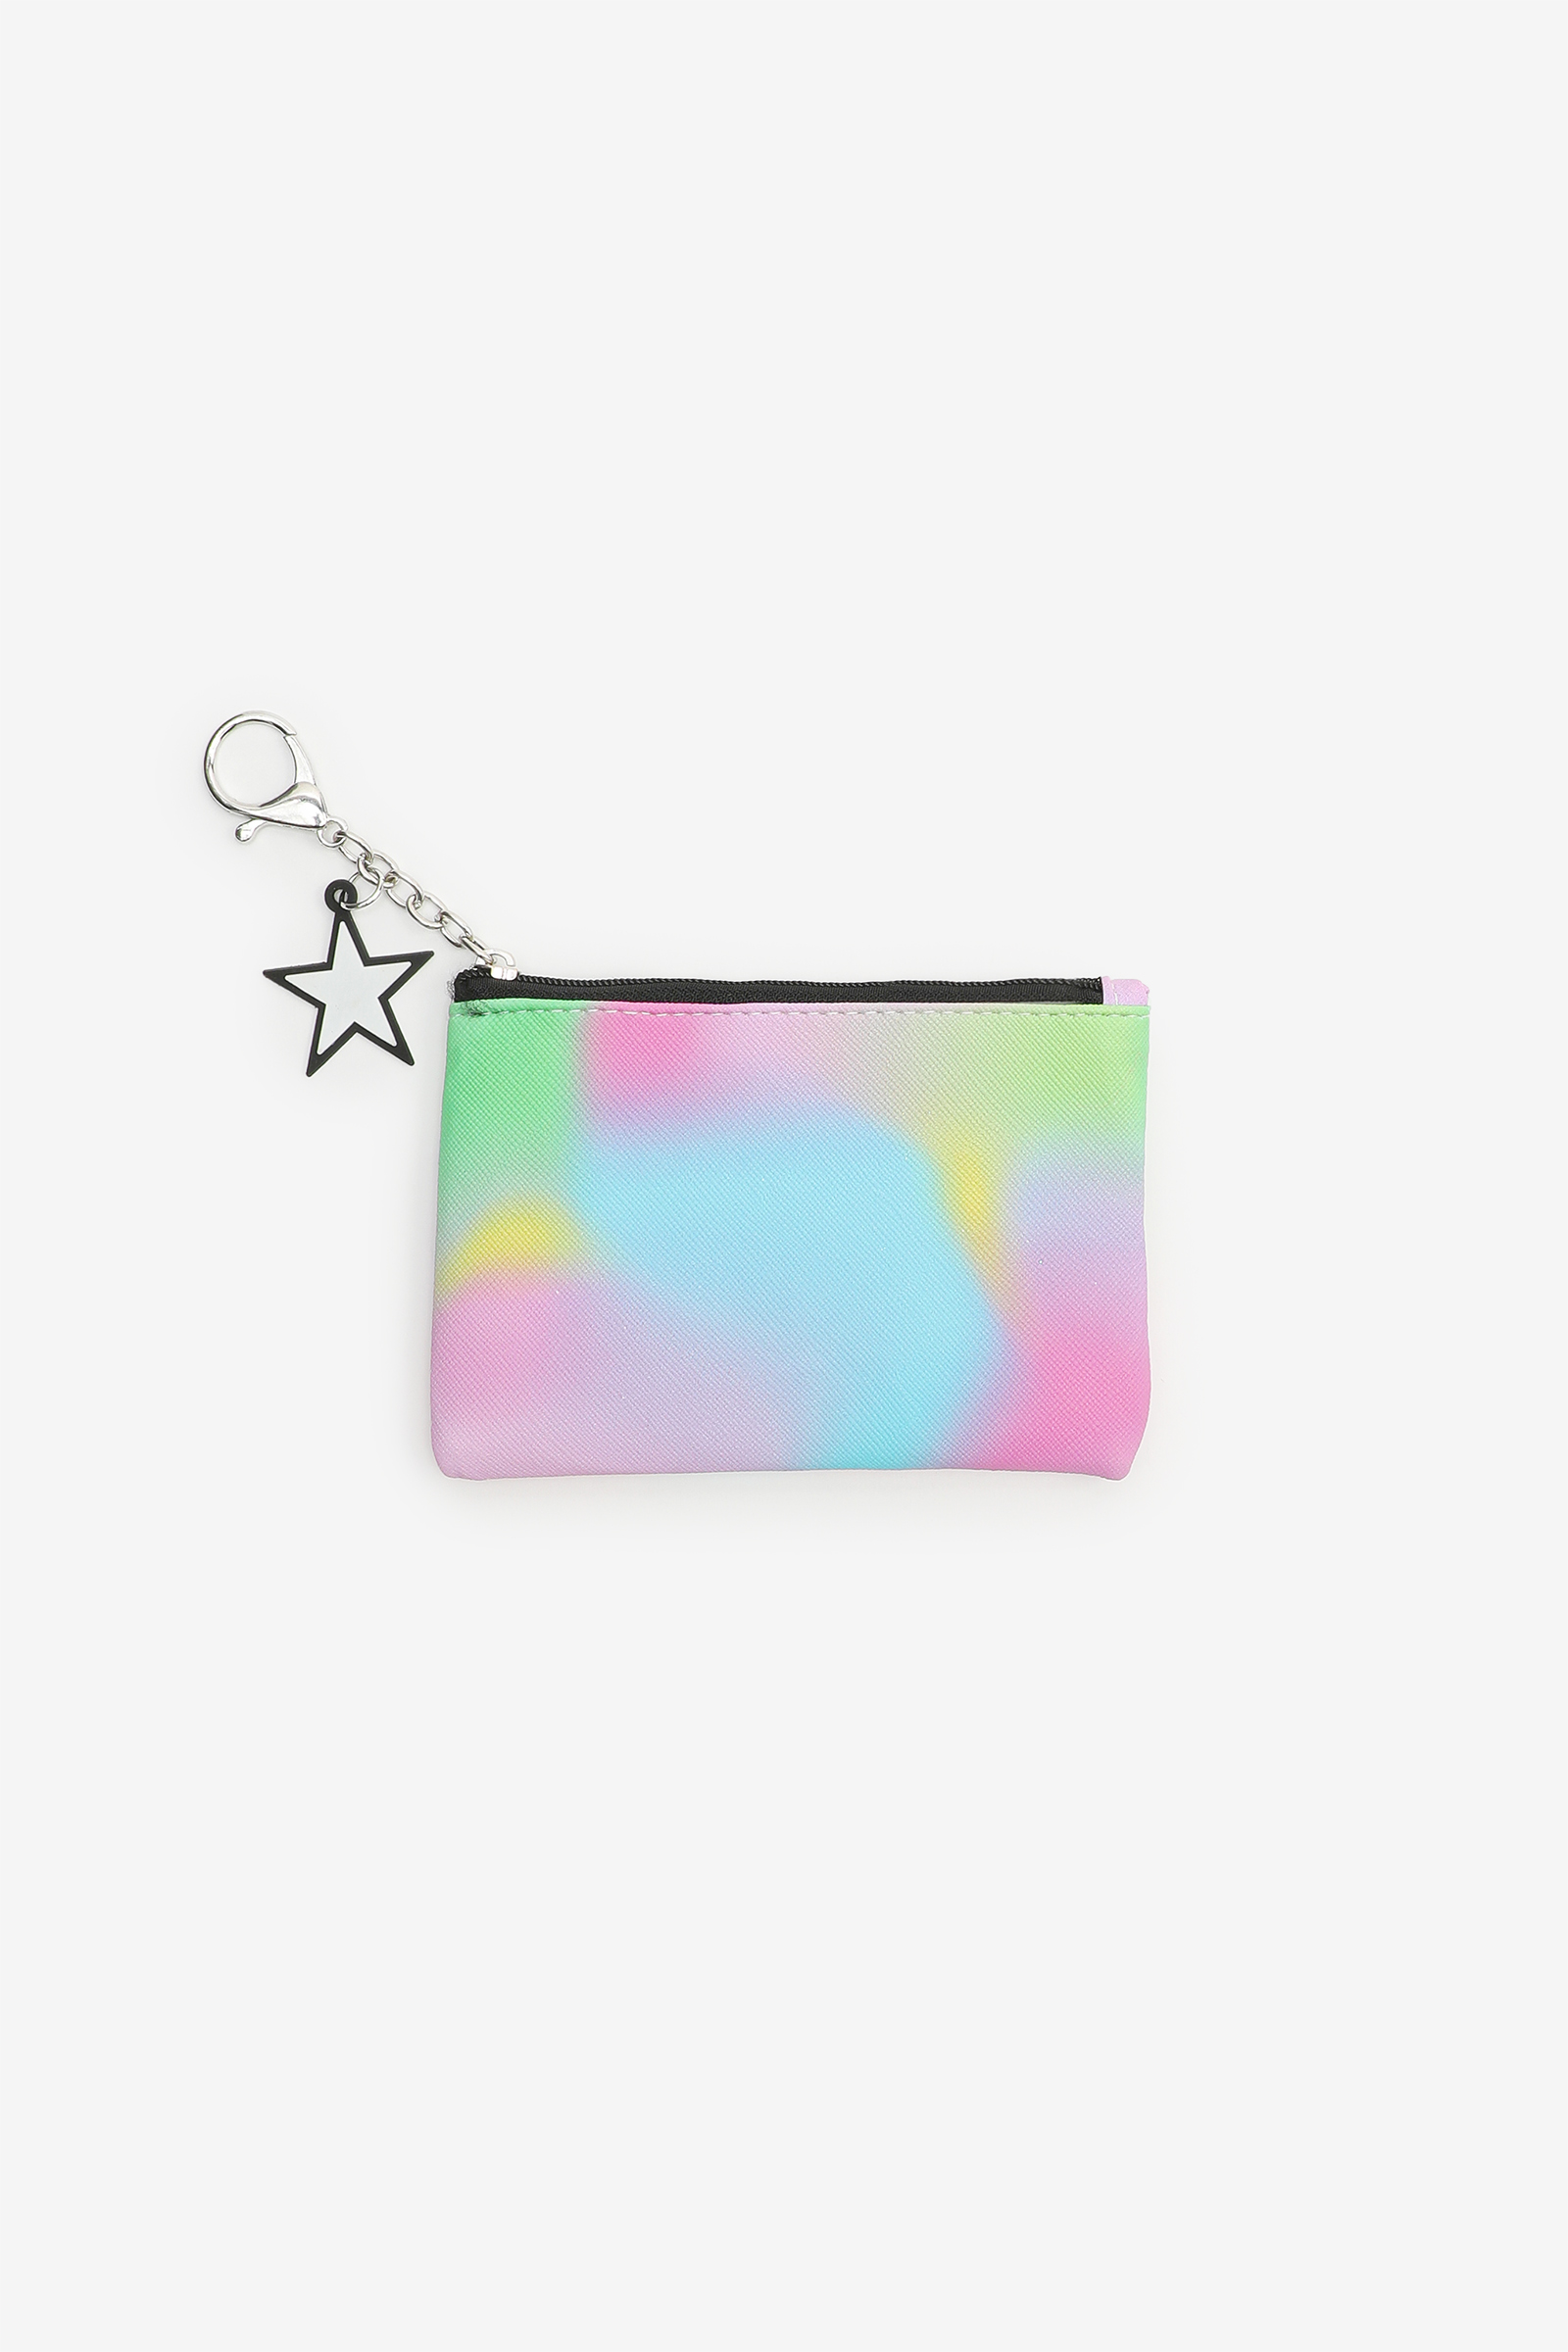 Tie-Dye Coin Purse for Girls